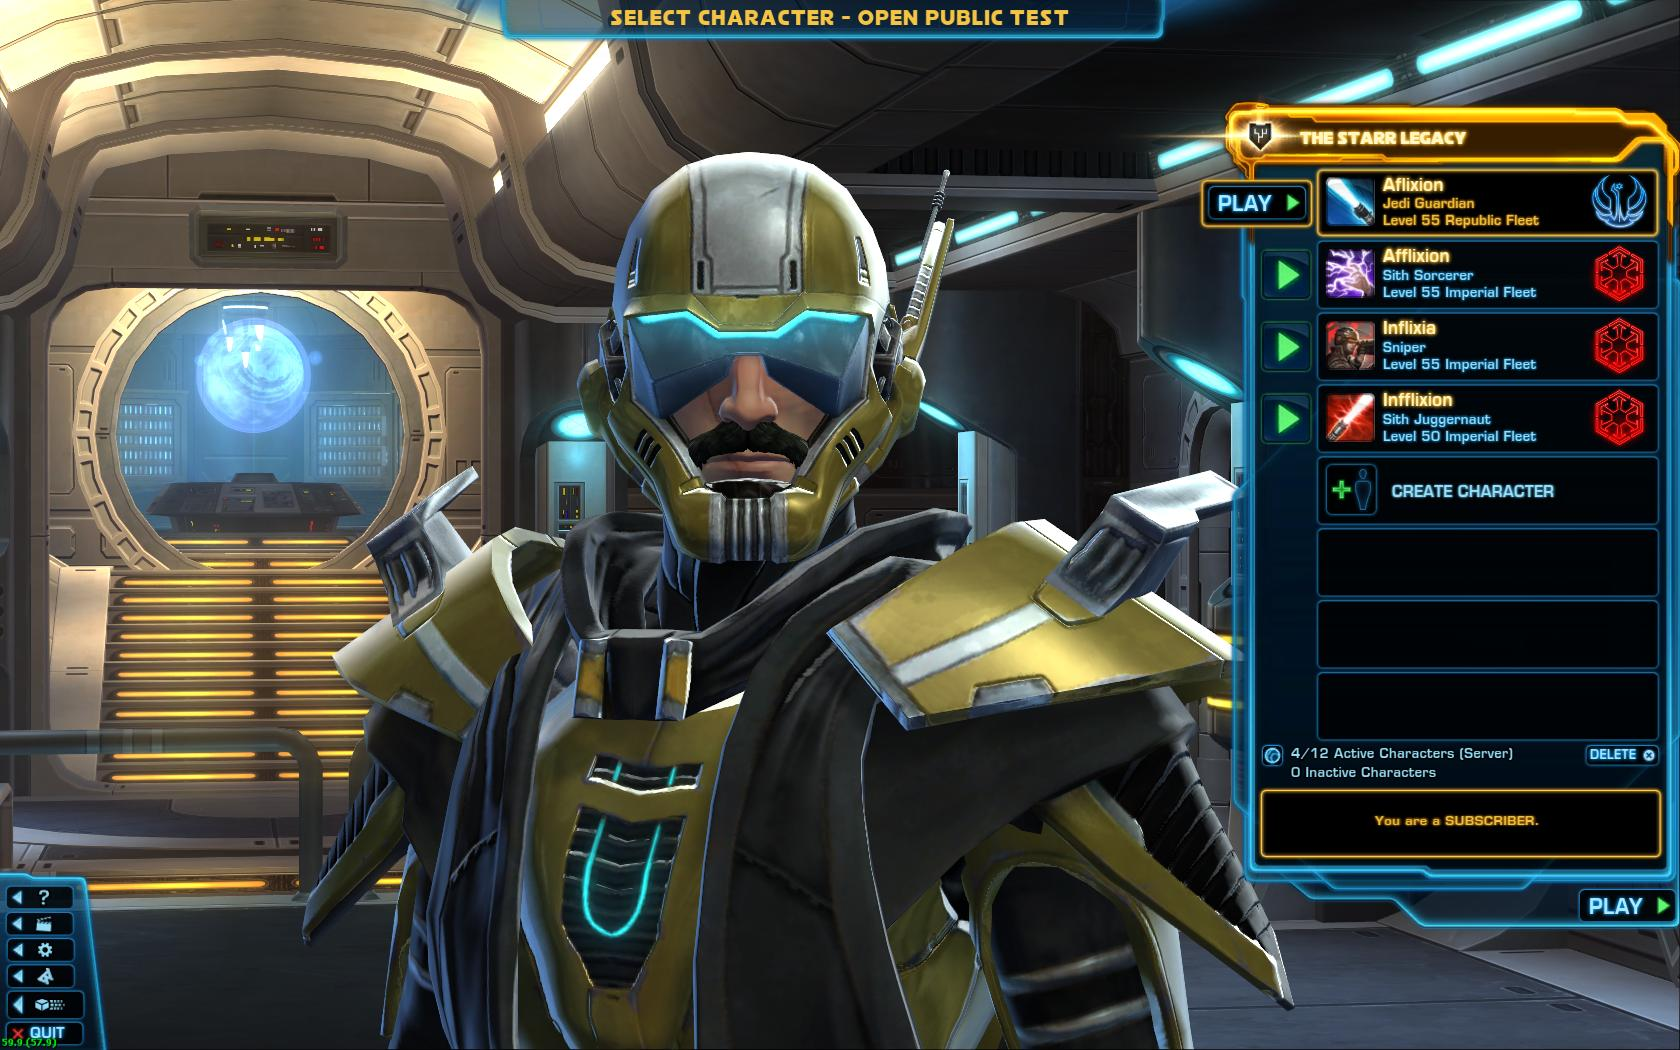 swtor Possible Fix for Failed Character Copy to PTS